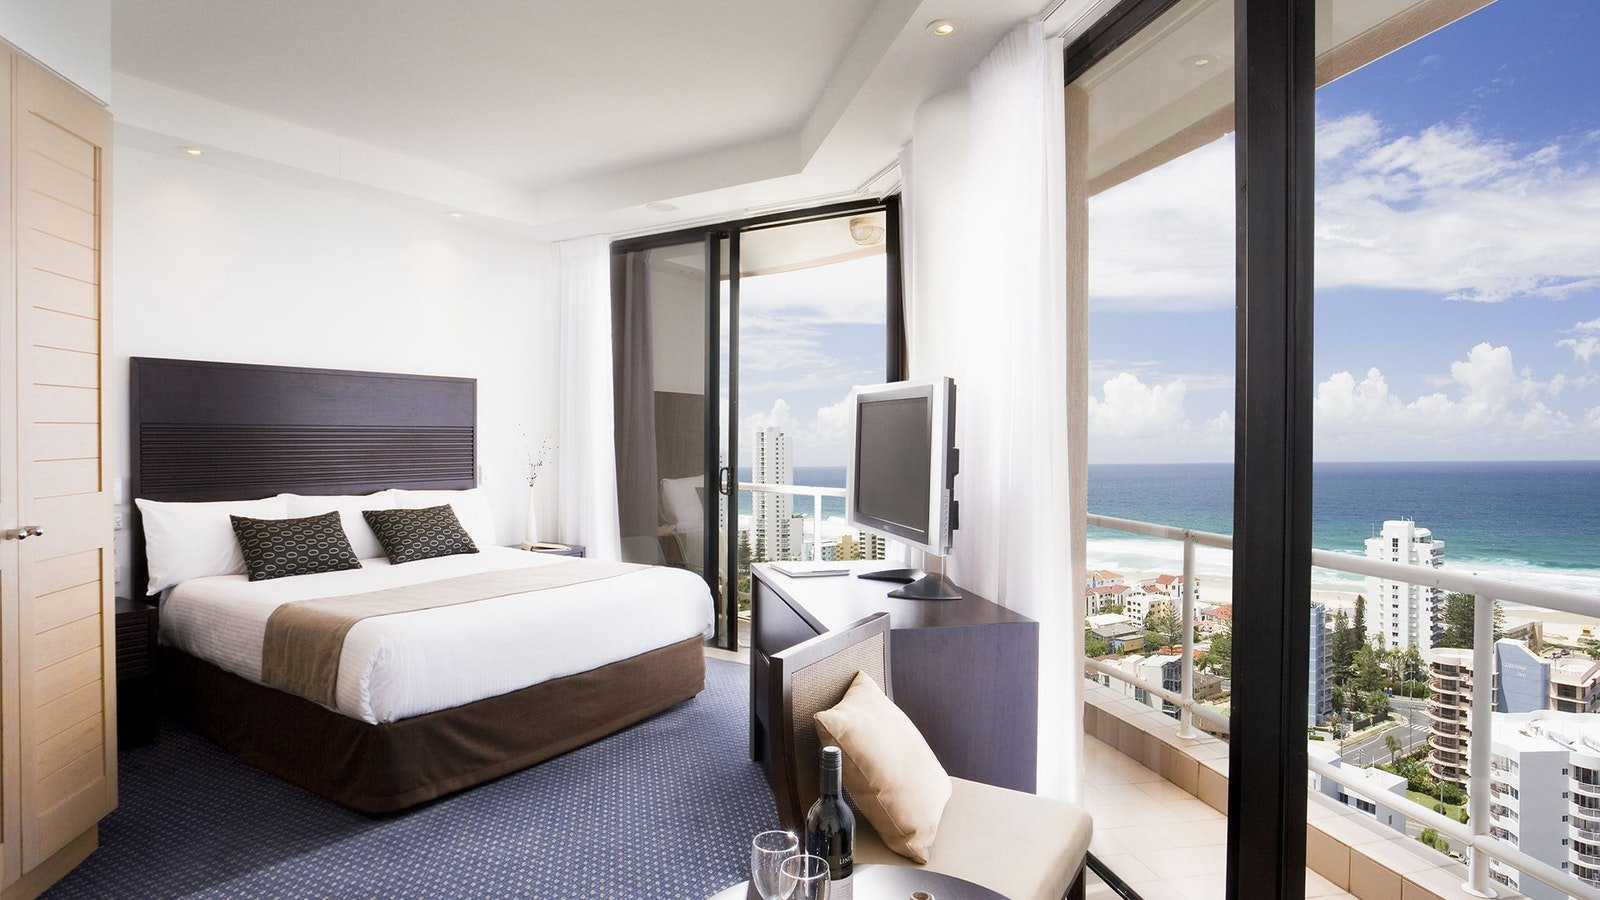 Crowne Plaza Surfers Paradise Superior King Room